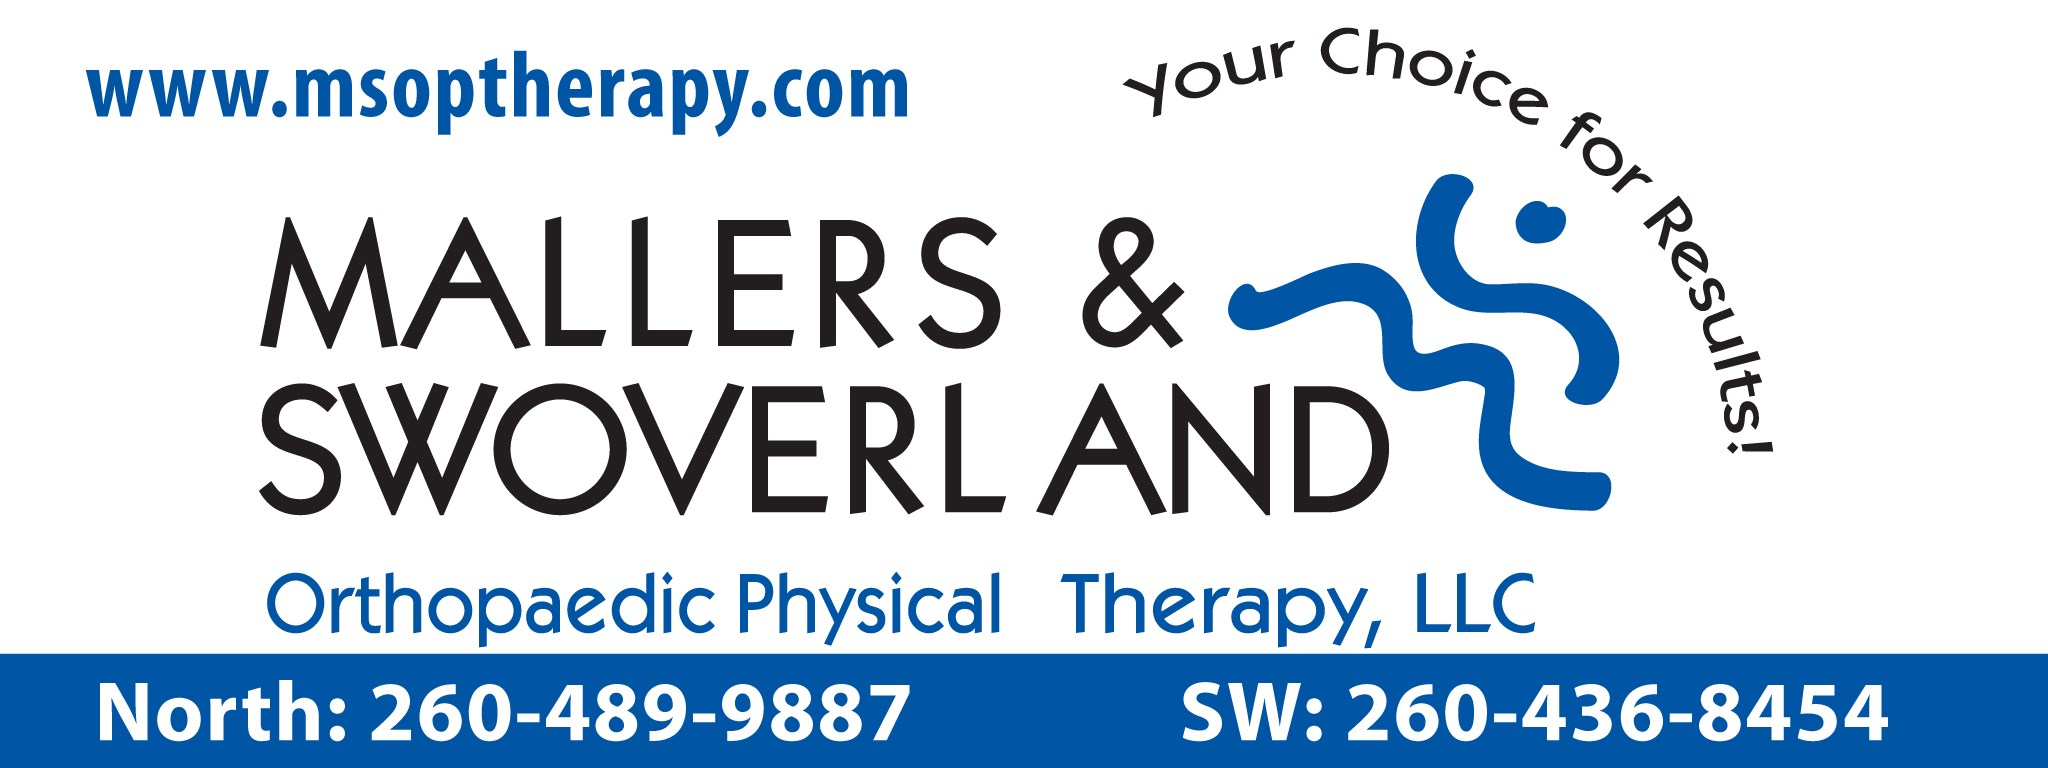 Mallers Amp Swoverland Orthopaedic Physical Therapy Reviews